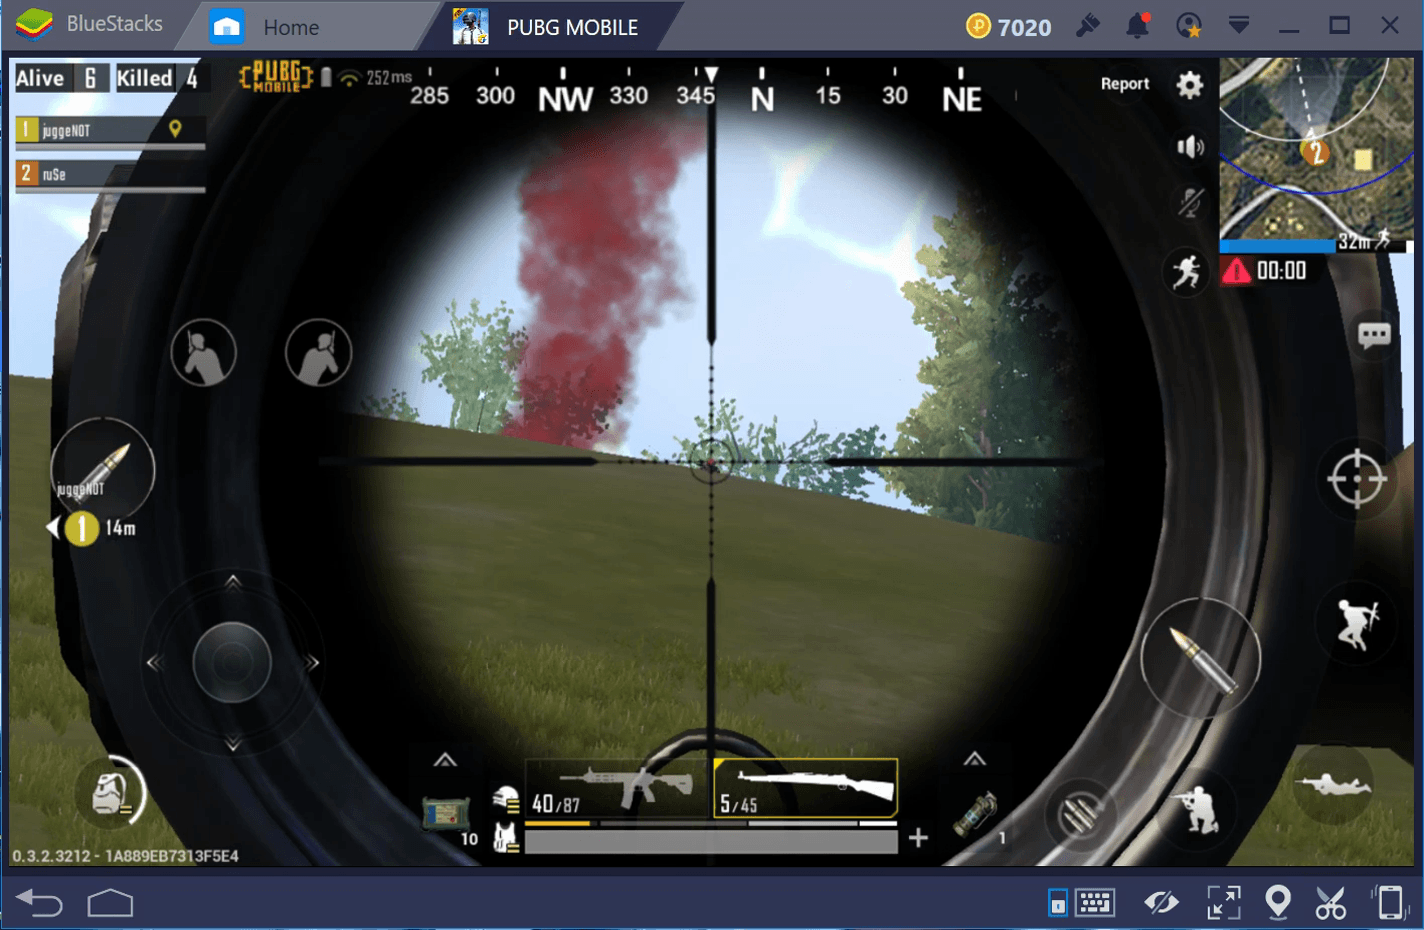 Expert PUBG Mobile Sniping Guide